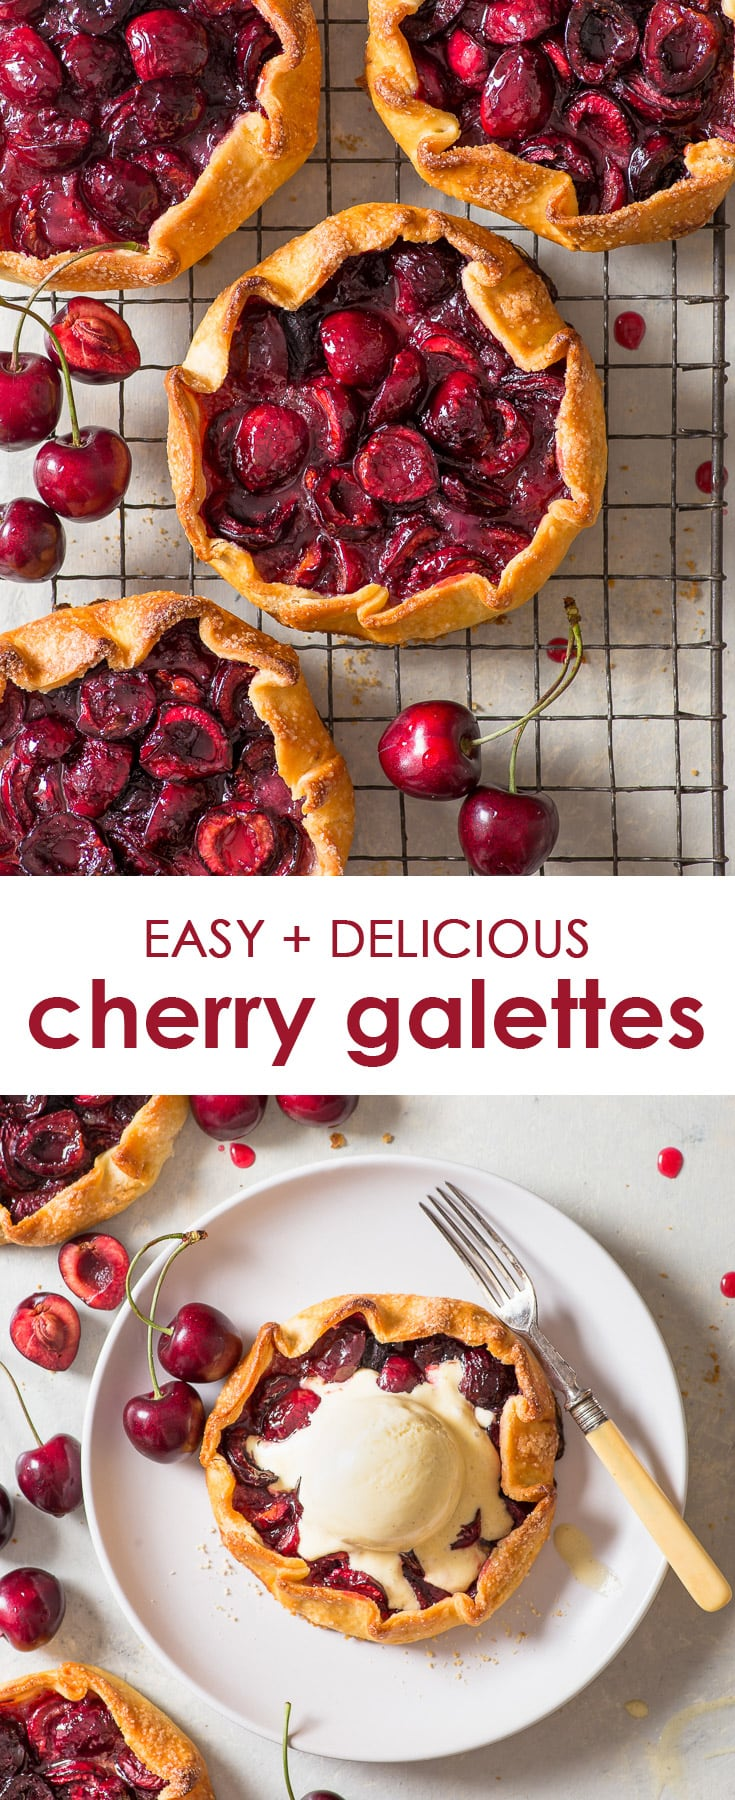 Cherry Galettes (Gluten Free) - Boasting the perfect flaky, buttery pie crust and a juicy cherry filling, these cherry galettes will have you coming back for seconds… and thirds. Plus, they're dead easy to make and gluten free! Gluten free pie. Cherry pie. Cherry pie filling. Gluten free pie crust recipe. Gluten free dessert. Cherry dessert recipes. How to make pie pastry. Crostata recipe. Galette recipe. Cherry recipes. #pie #glutenfree